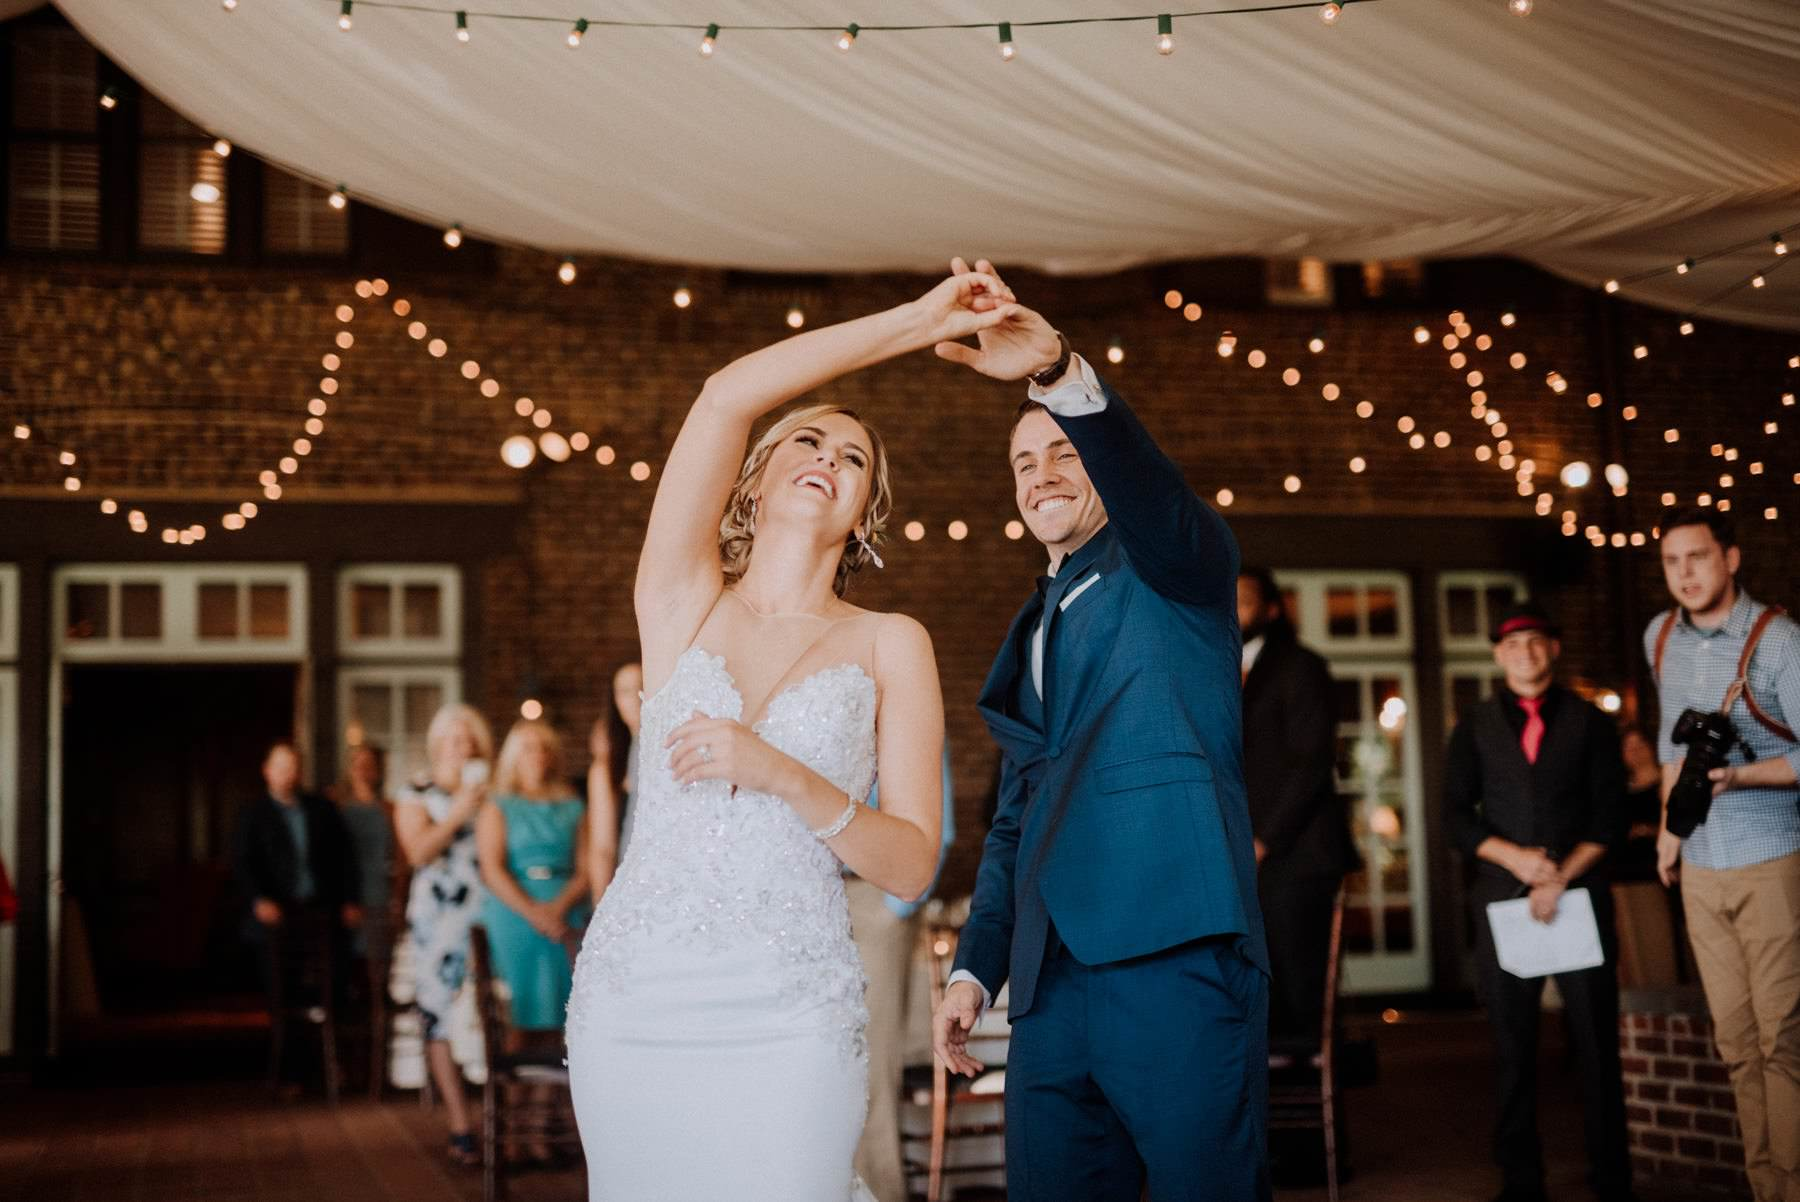 greenville-country-club-wedding-photographer-67.jpg